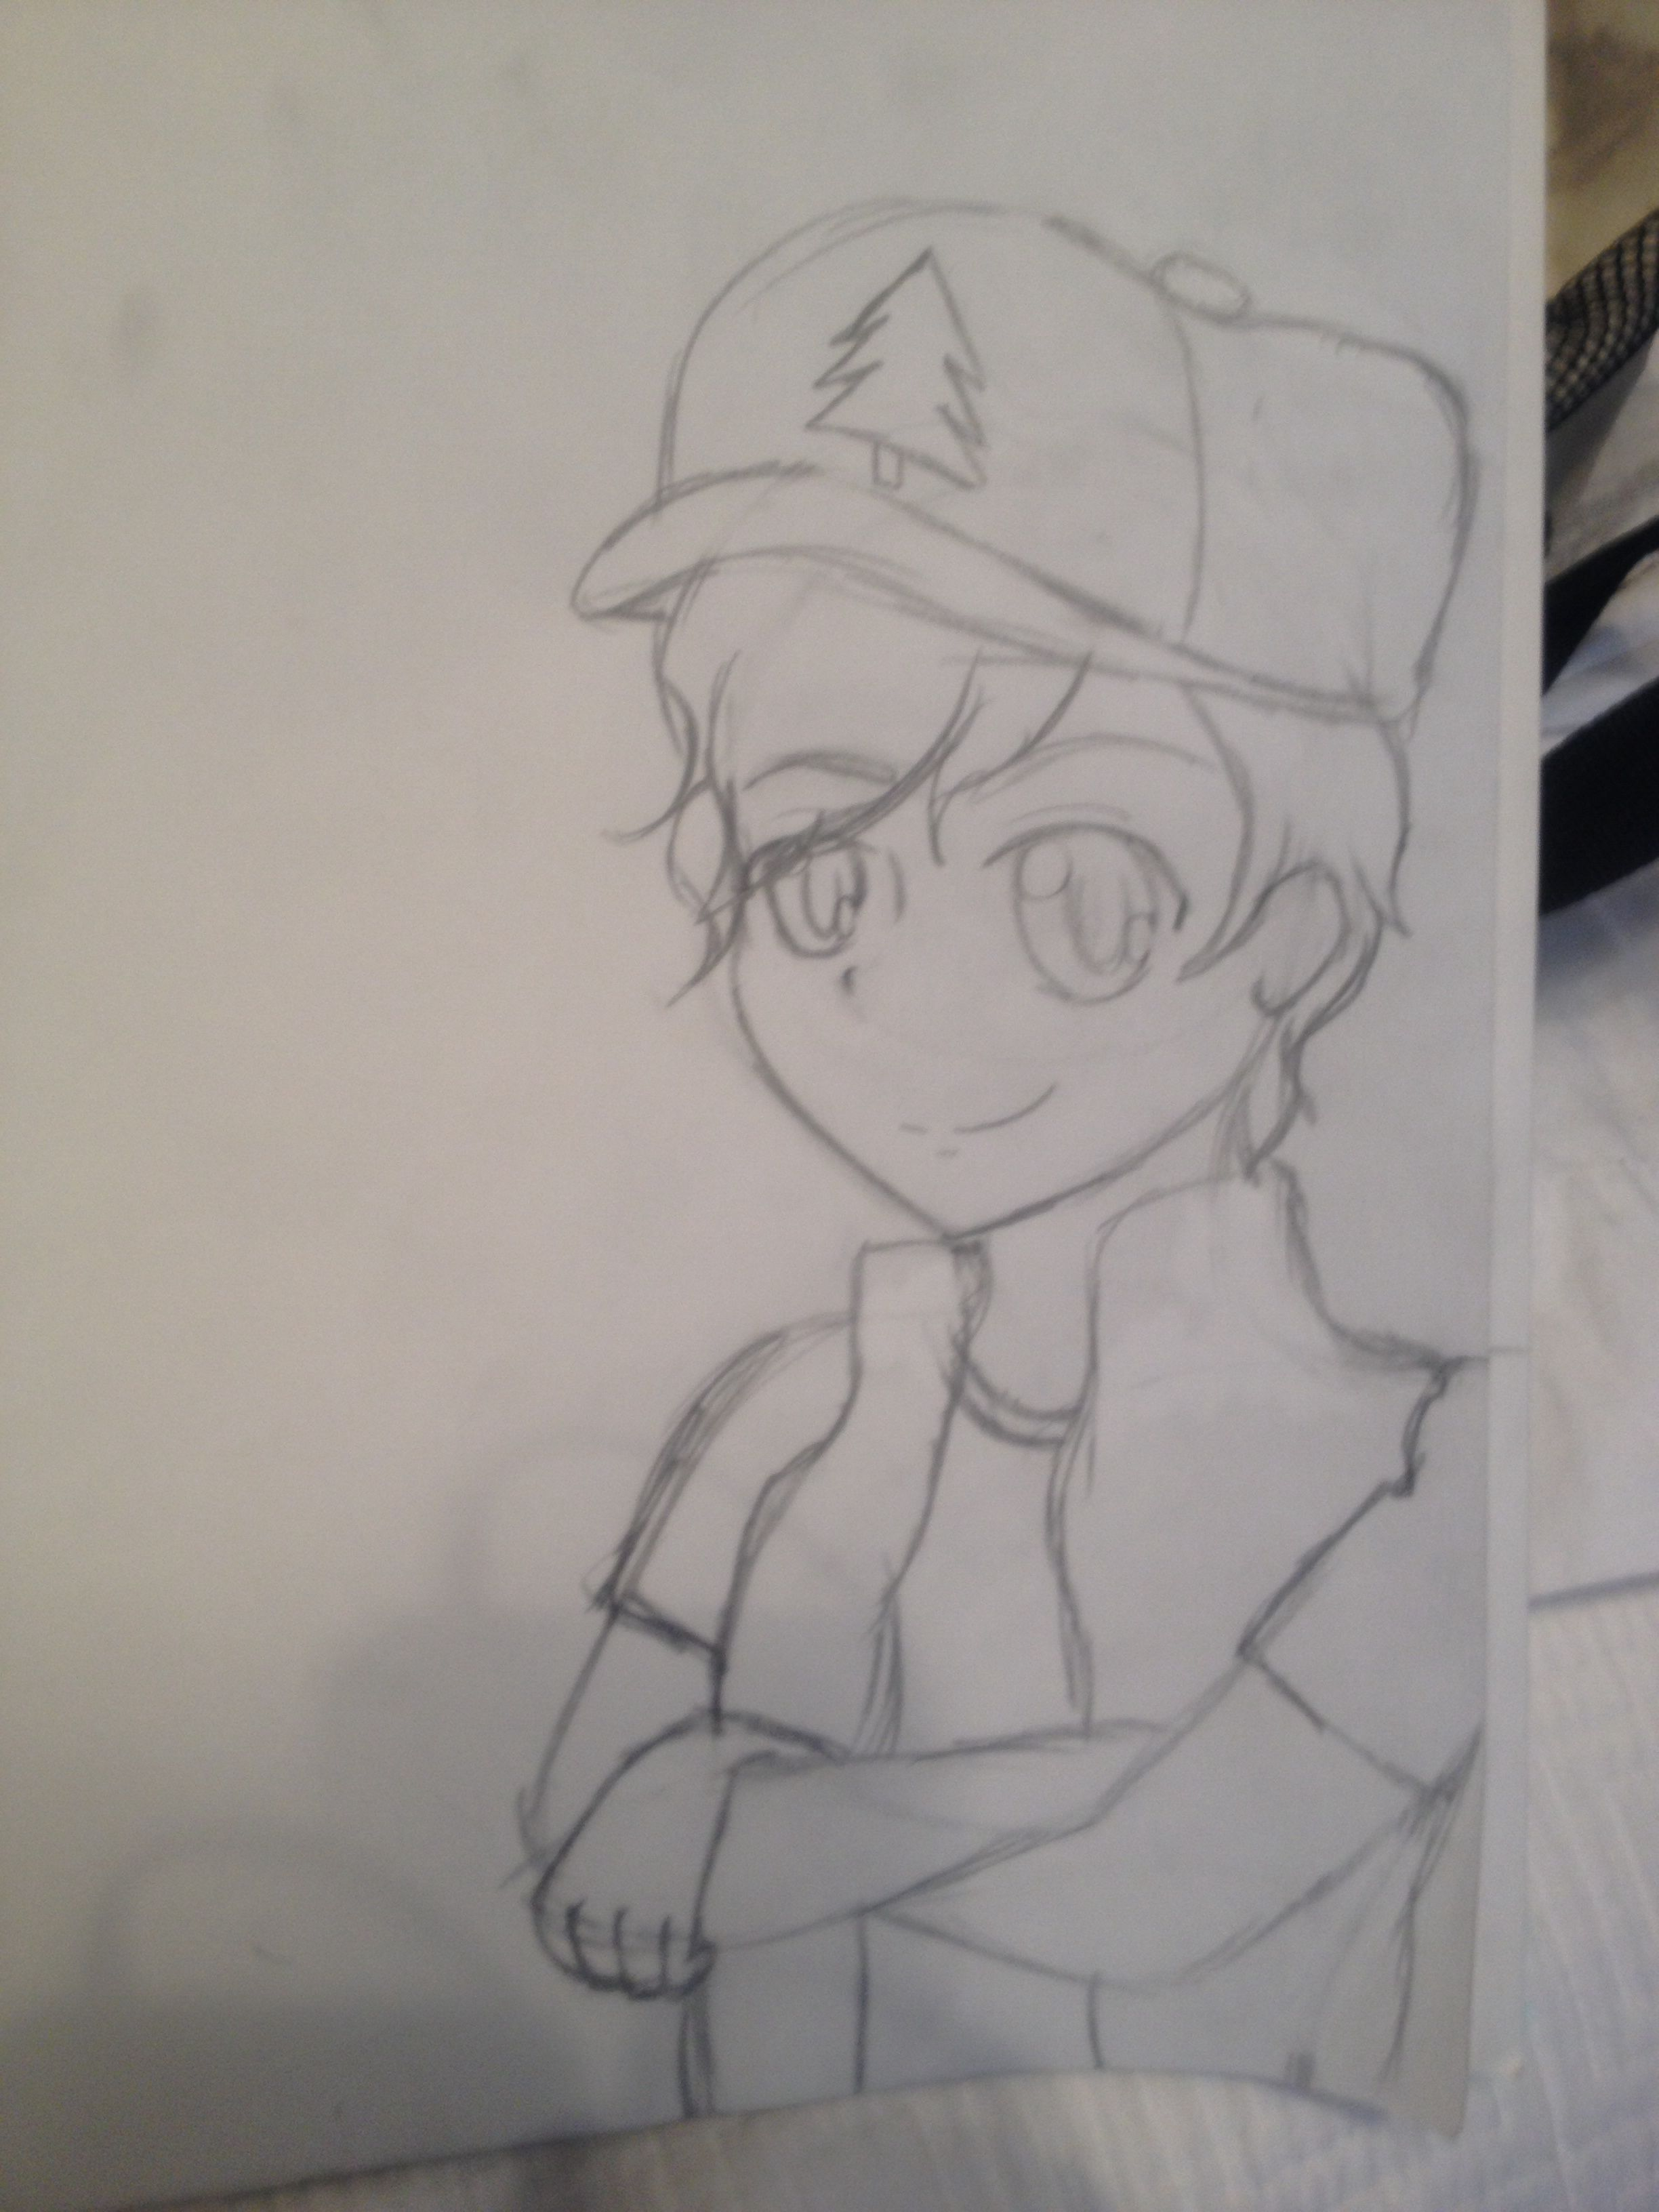 Anime Dipper so far. Requested by @sophiahickerson